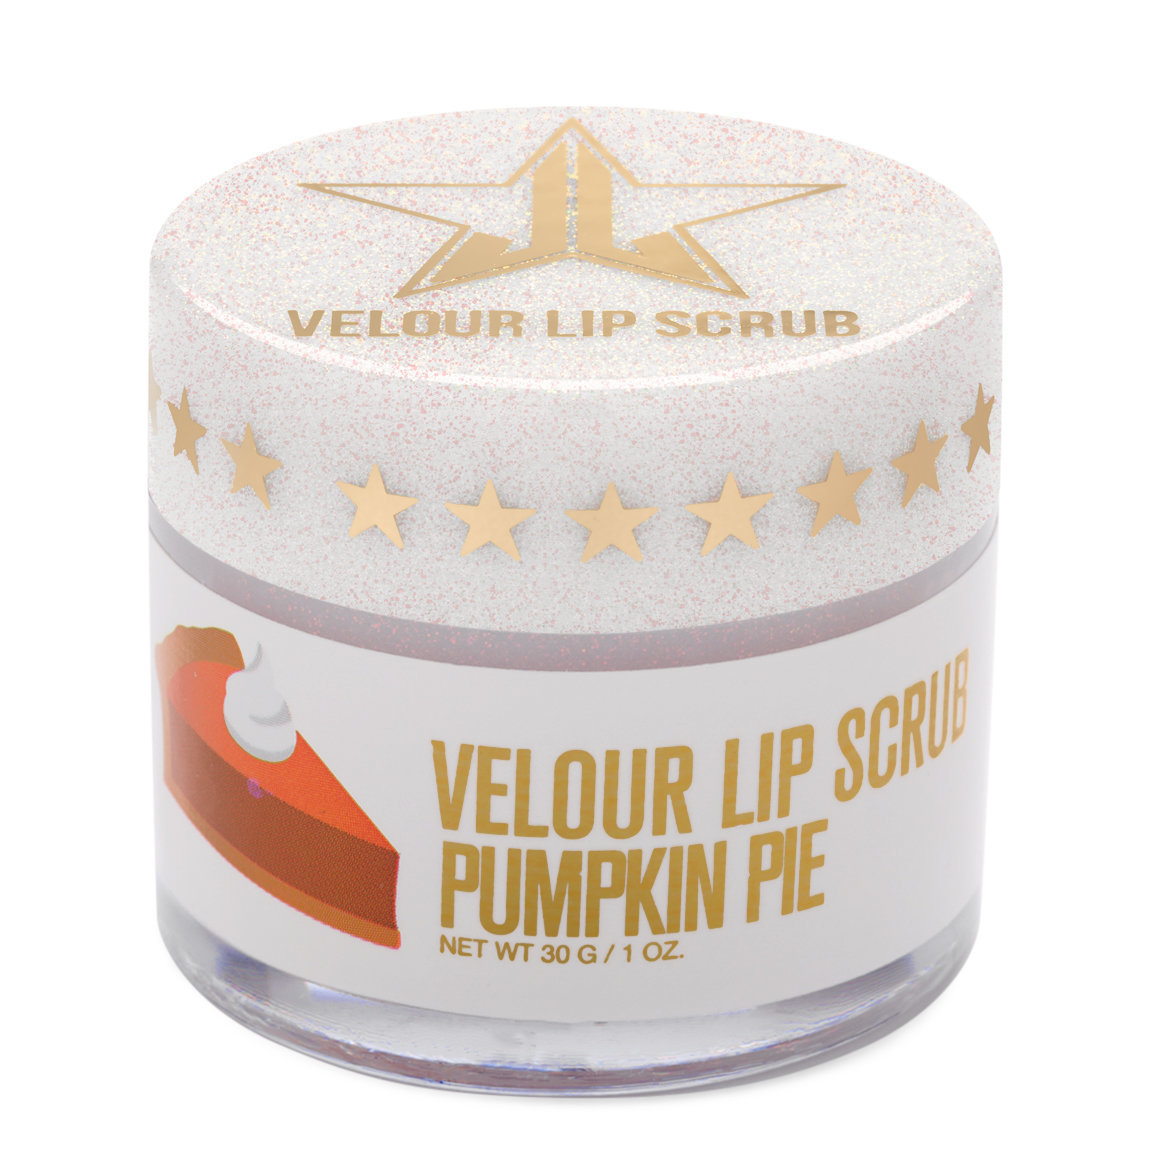 Jeffree Star Cosmetics Velour Lip Scrub Pumpkin Pie